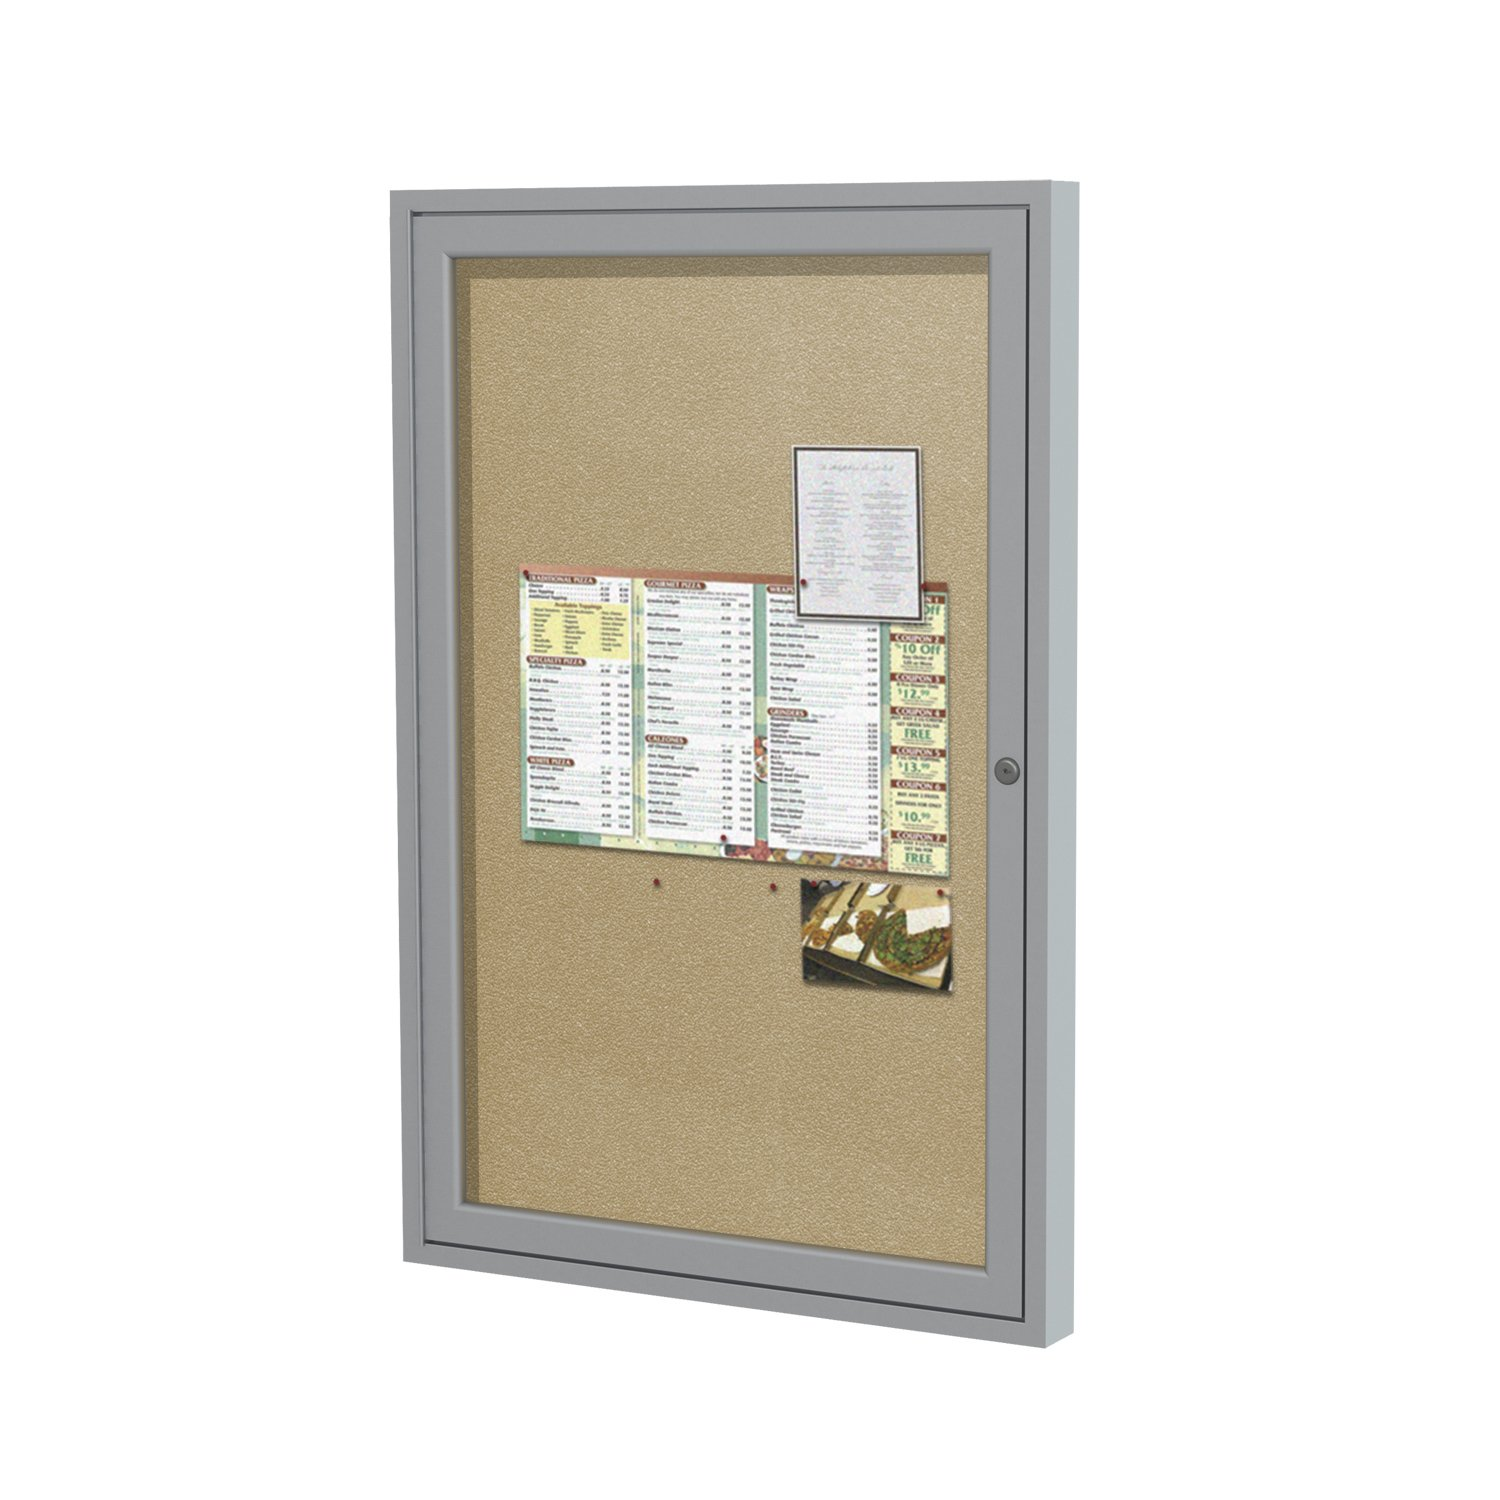 Ghent 36x24 1-Door Outdoor Enclosed Vinyl Bulletin Board, Shatter Resistant, with Lock, Satin Aluminum Frame - Caramel (PA13624VX-31 Z11640), Made in the USA PA13624VX-181